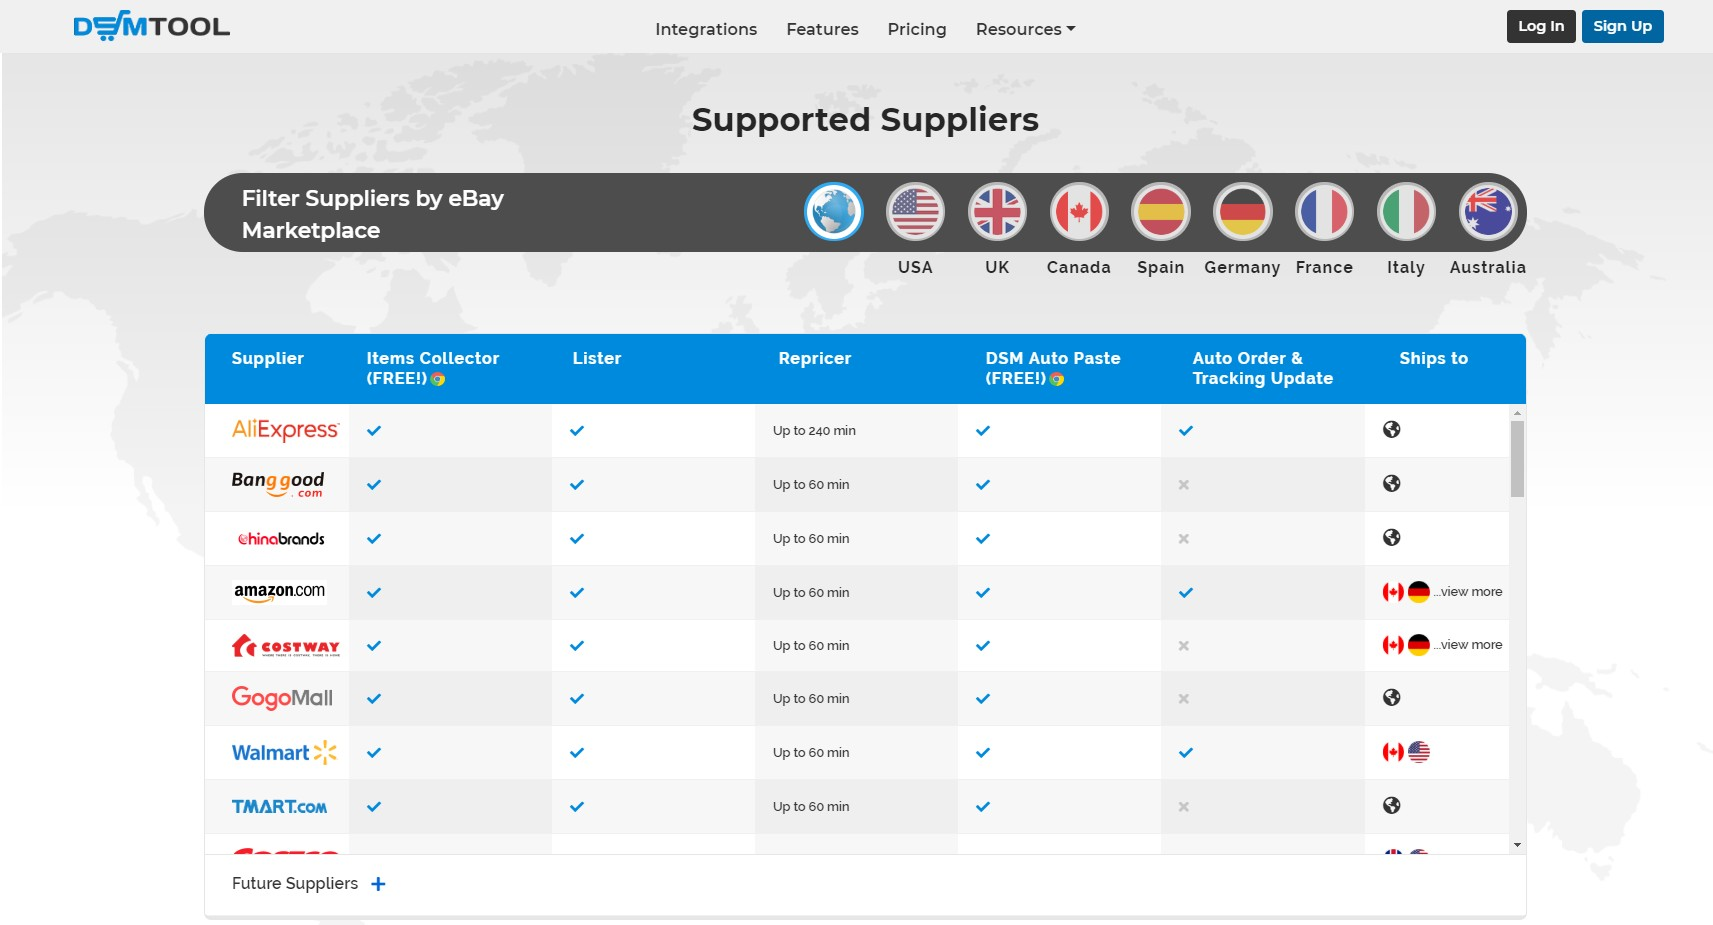 DSM TOOL supported suppliers list